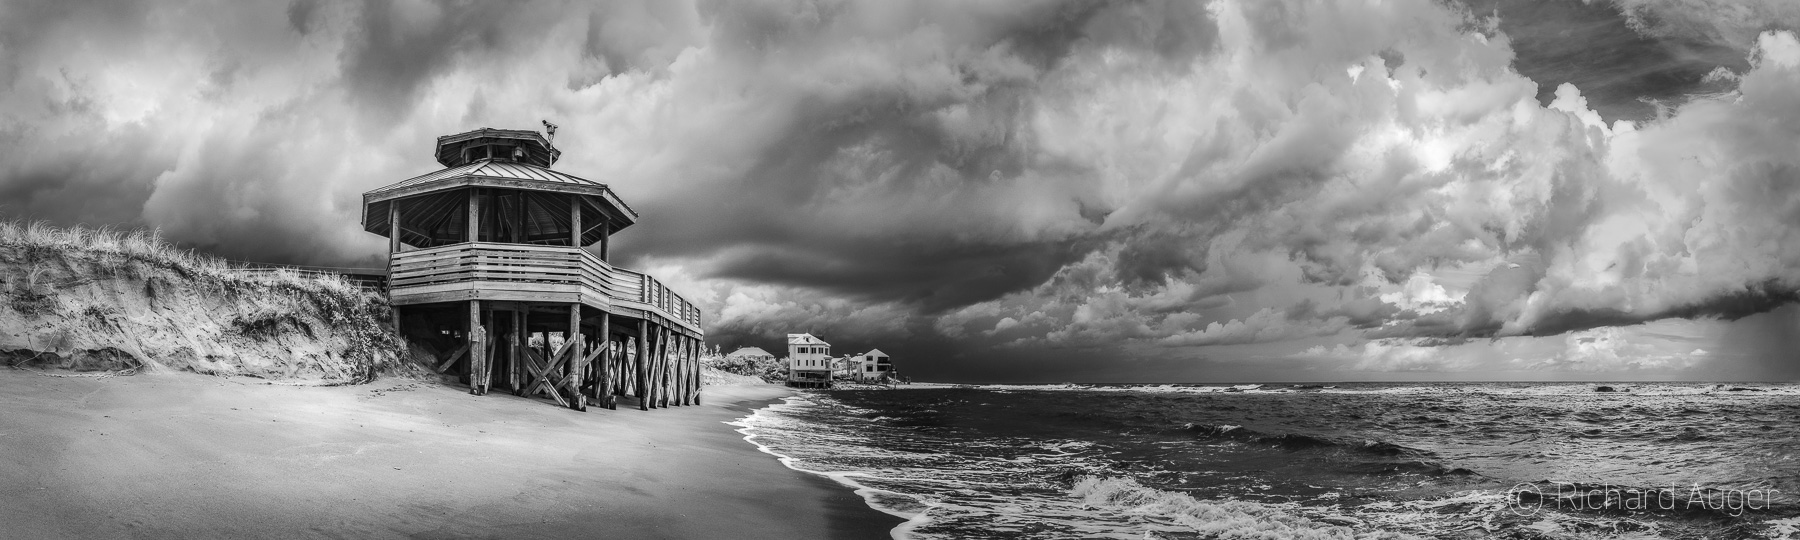 Bathtub Reef Beach, Stuart Jensen Beach Florida, Panorama, Photograph, Landscape, Stormy, Black and White